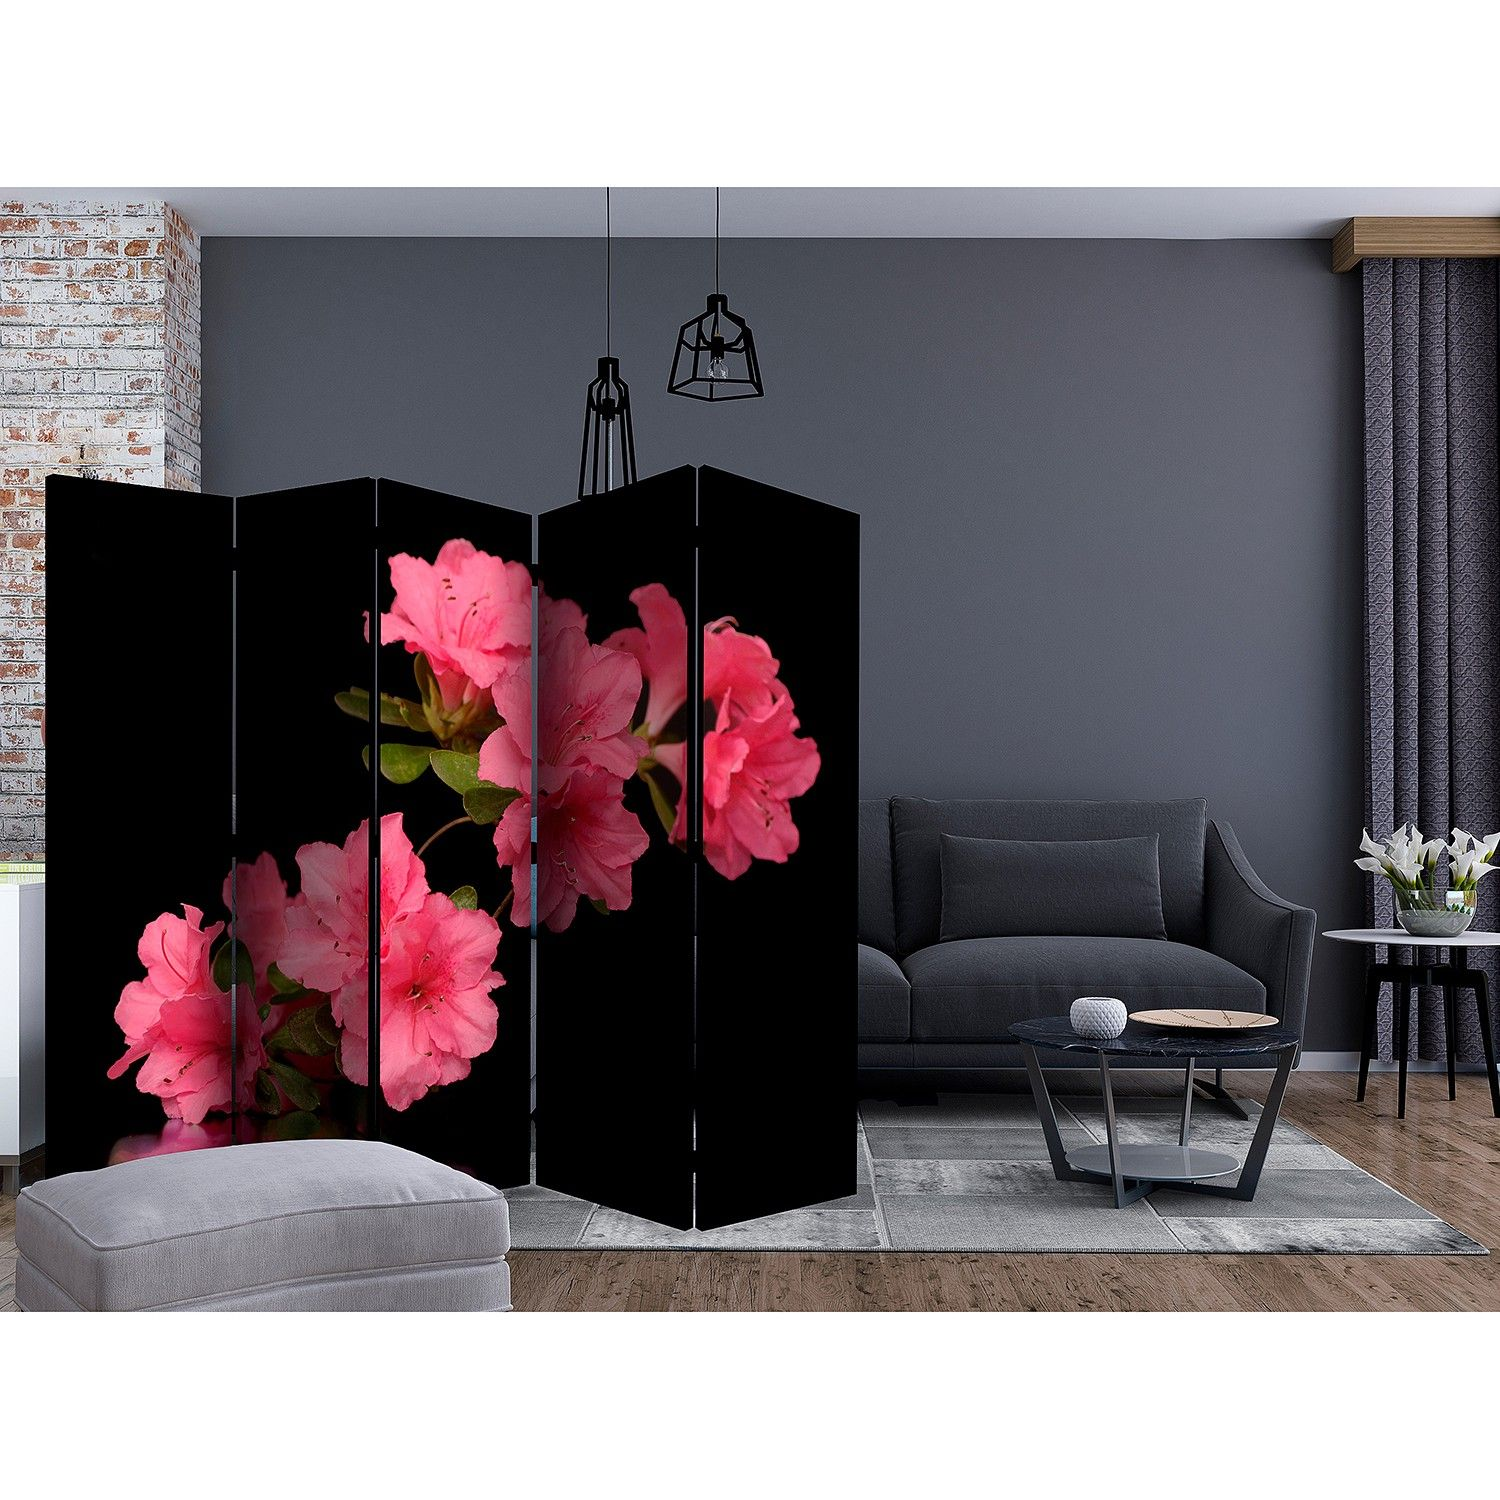 Kamerscherm Azalea in Black (5-delig), home24